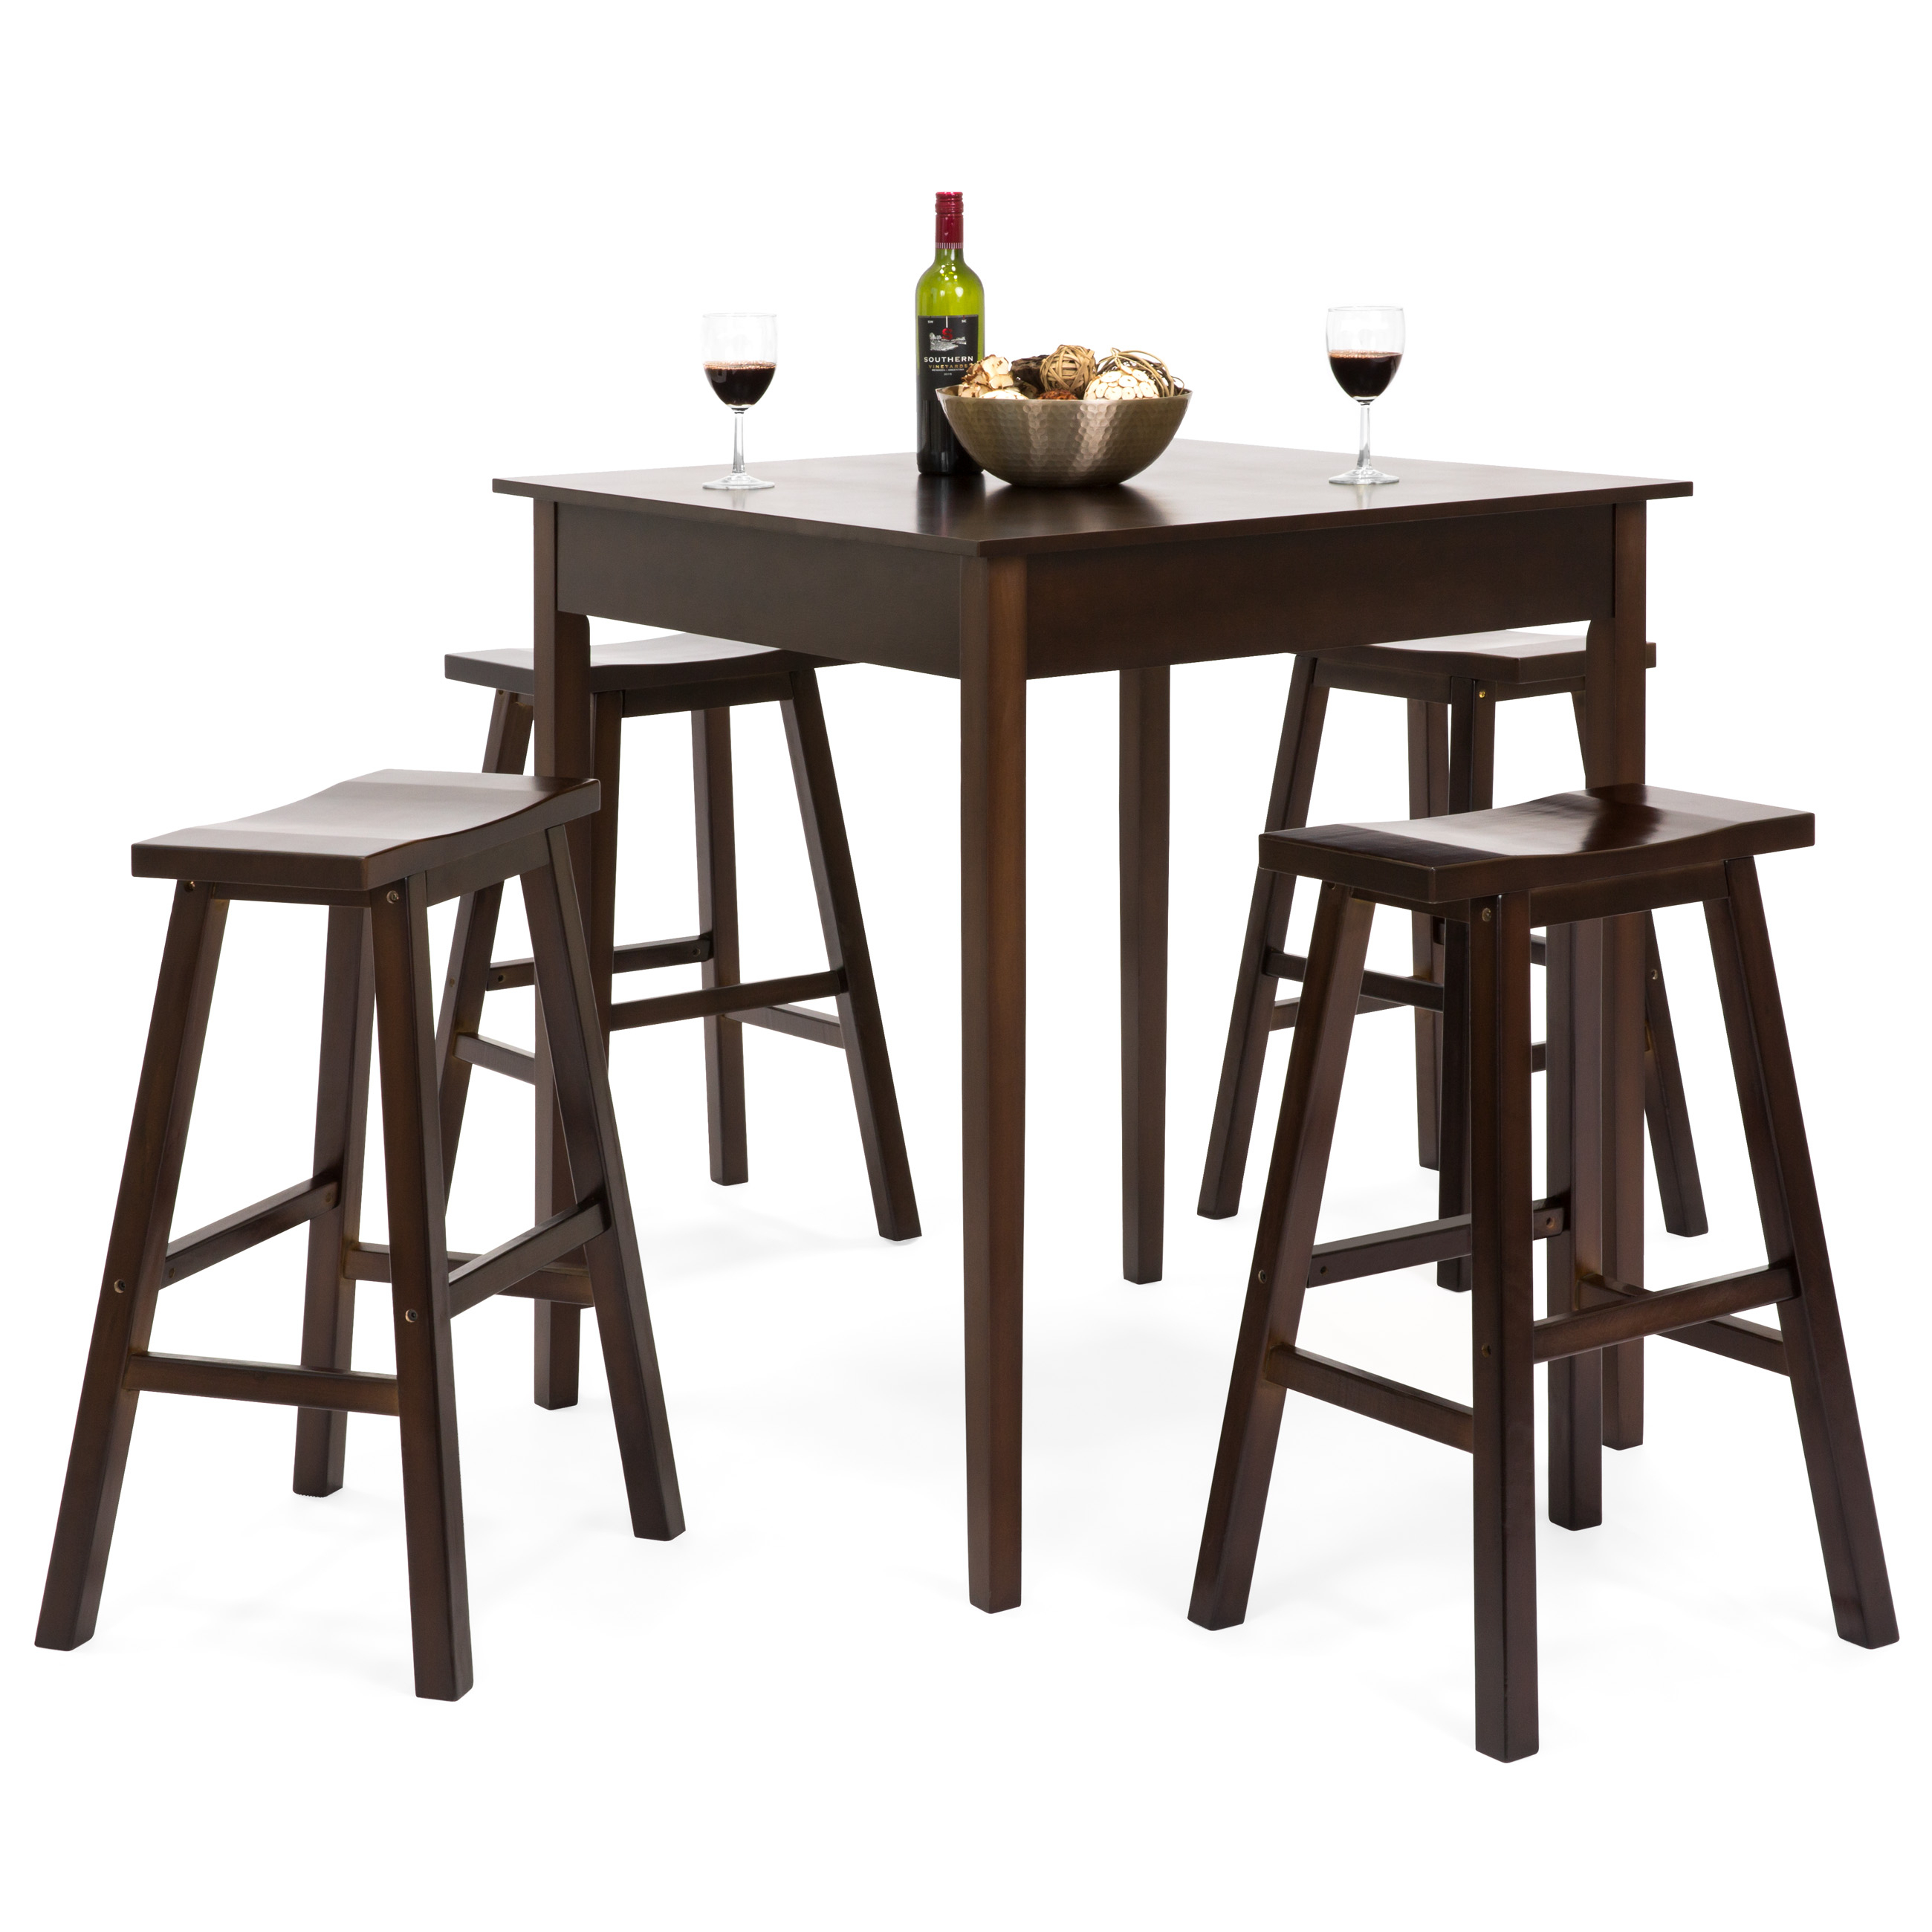 Recent Best Choice Products 5 Piece Solid Wood Dining Pub Bar Table Set With 4  Backless Saddle Stools Within Biggs 5 Piece Counter Height Solid Wood Dining Sets (Set Of 5) (#17 of 20)